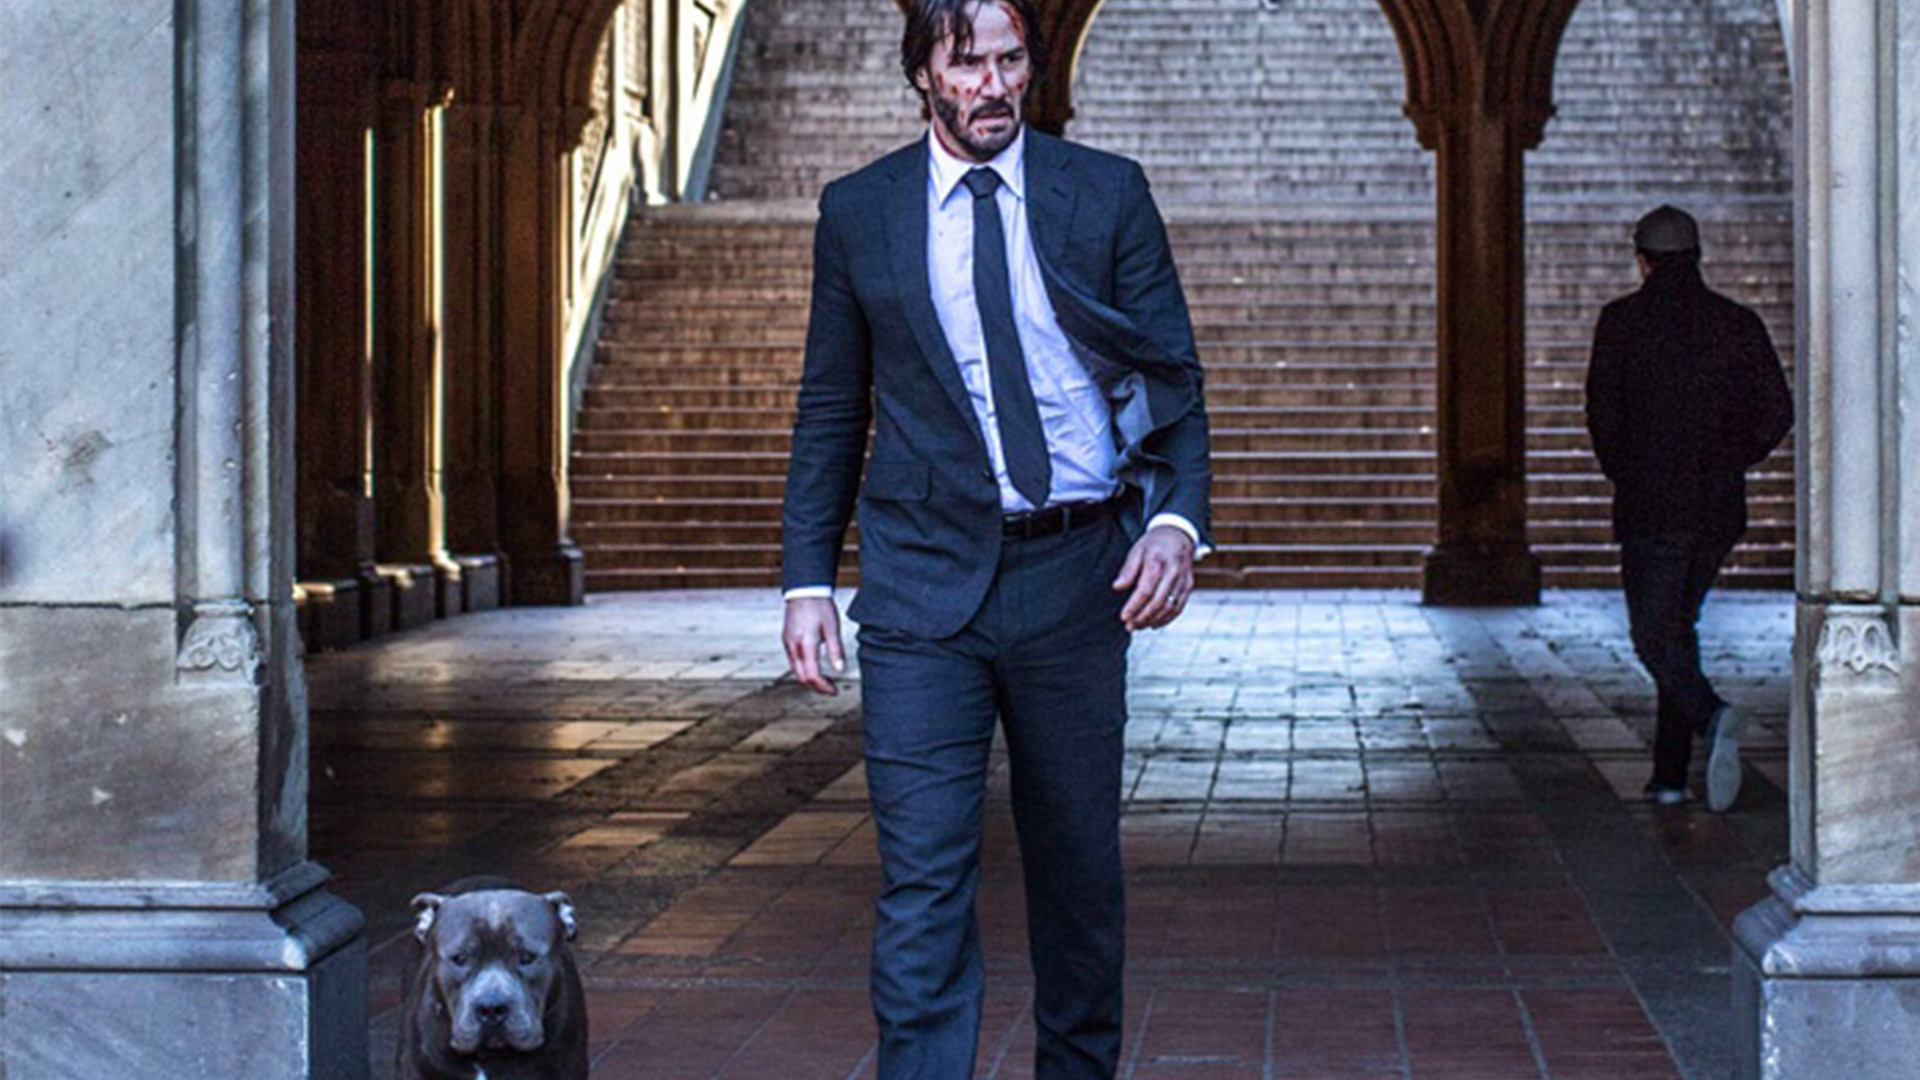 John Wick 3 Dog Is Back On Set For Filming More Scenes Of Boogeyman